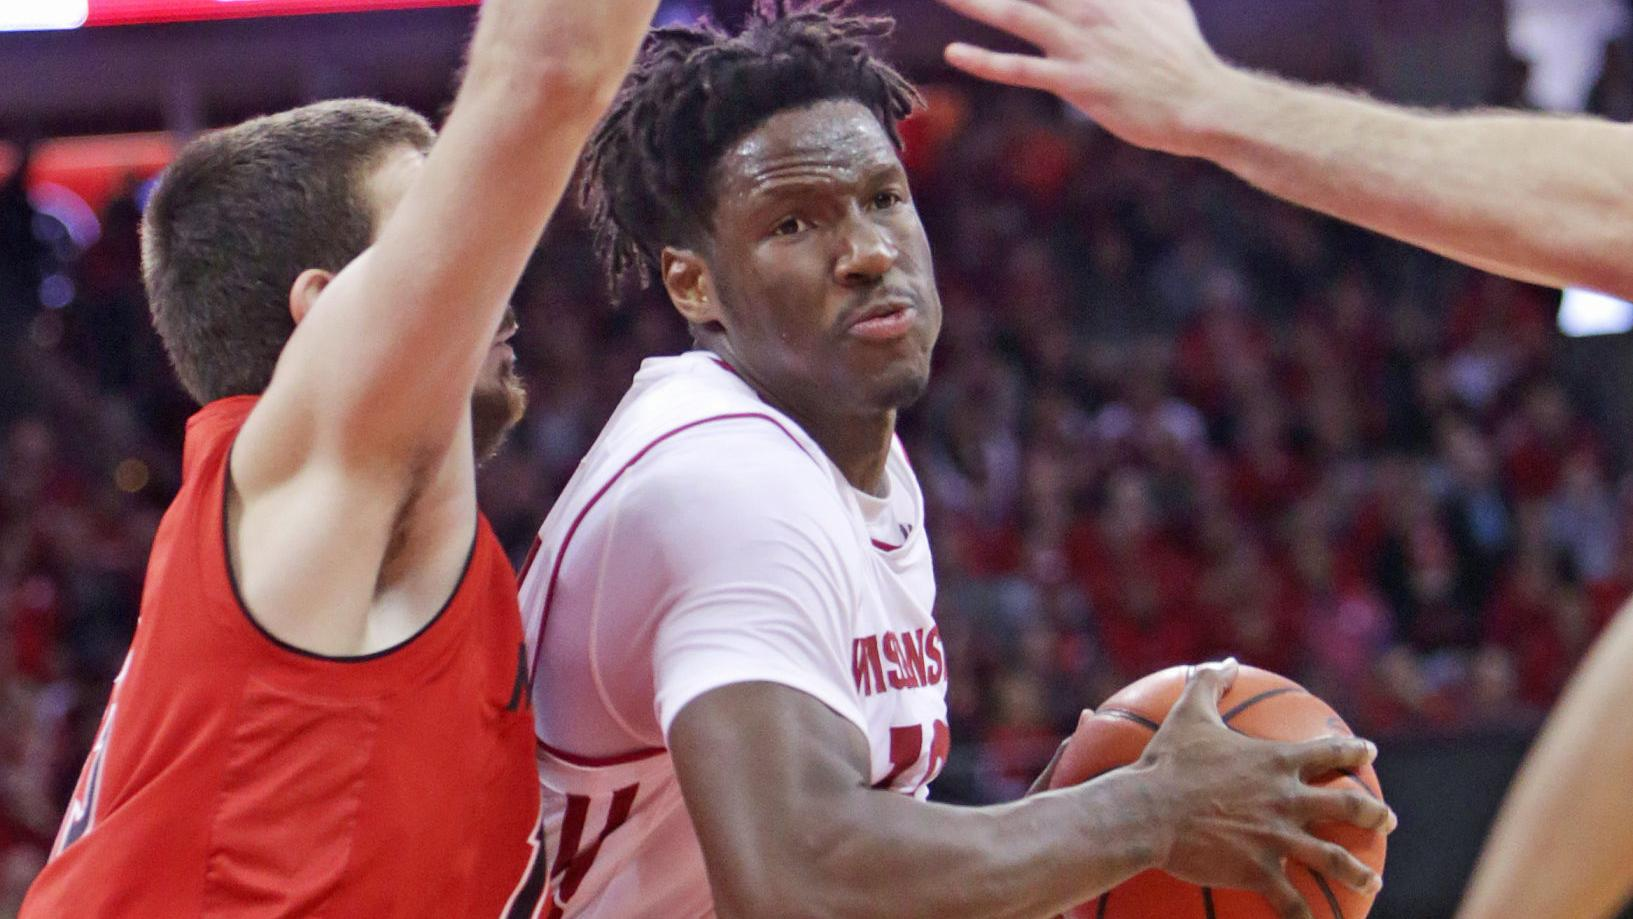 Badgers men's basketball: Undrafted, Nigel Hayes goes to Knicks, Bronson Koenig to Bucks, reports say